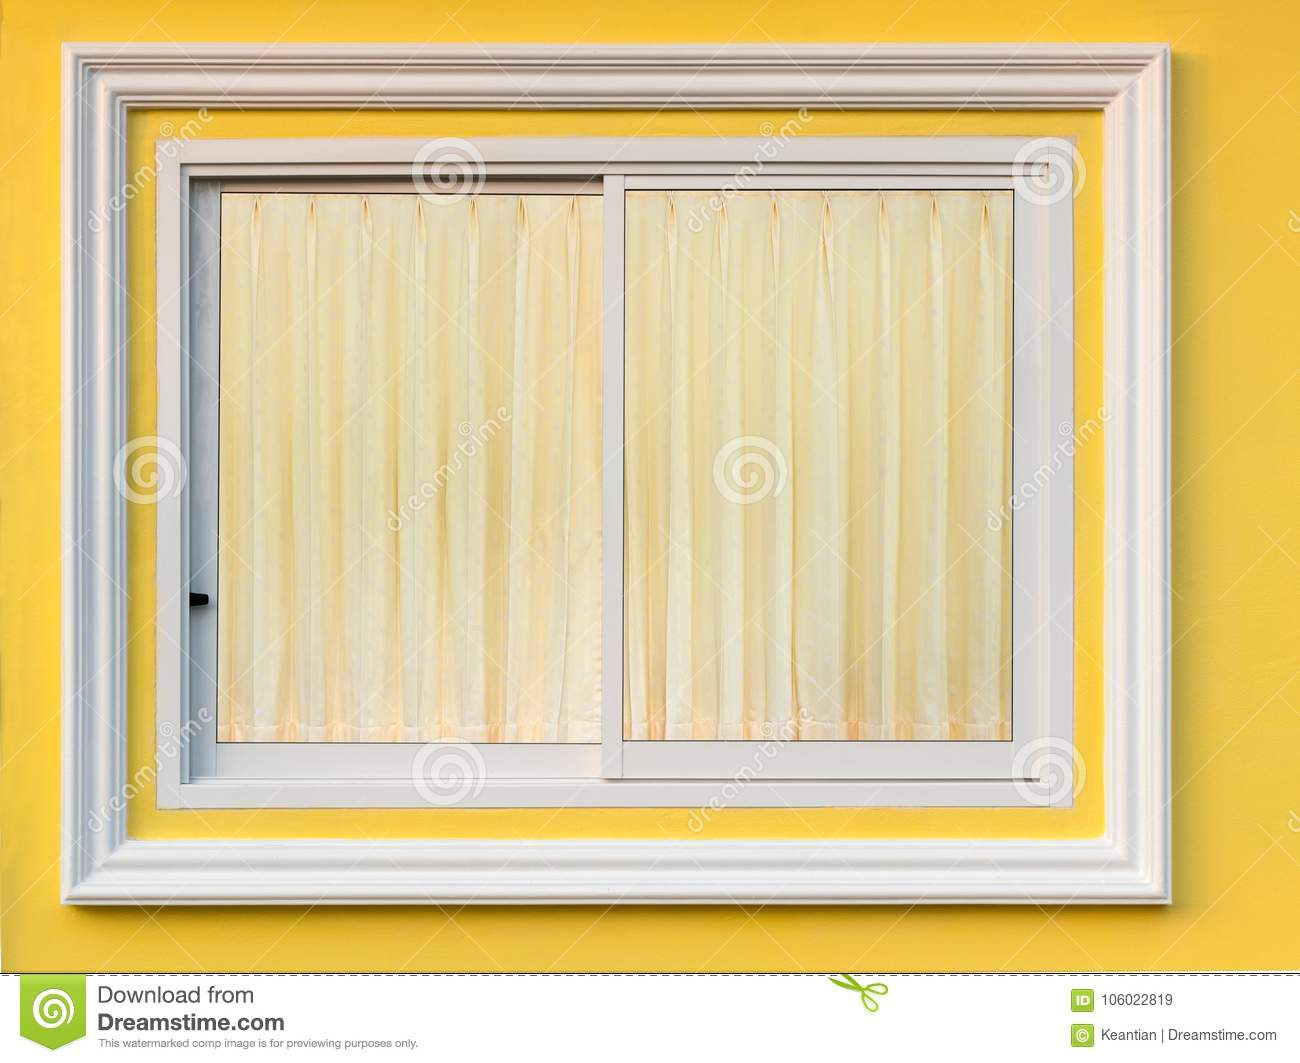 White Frame Window In Yellow Wall With Curtain. Stock Image - Image ...